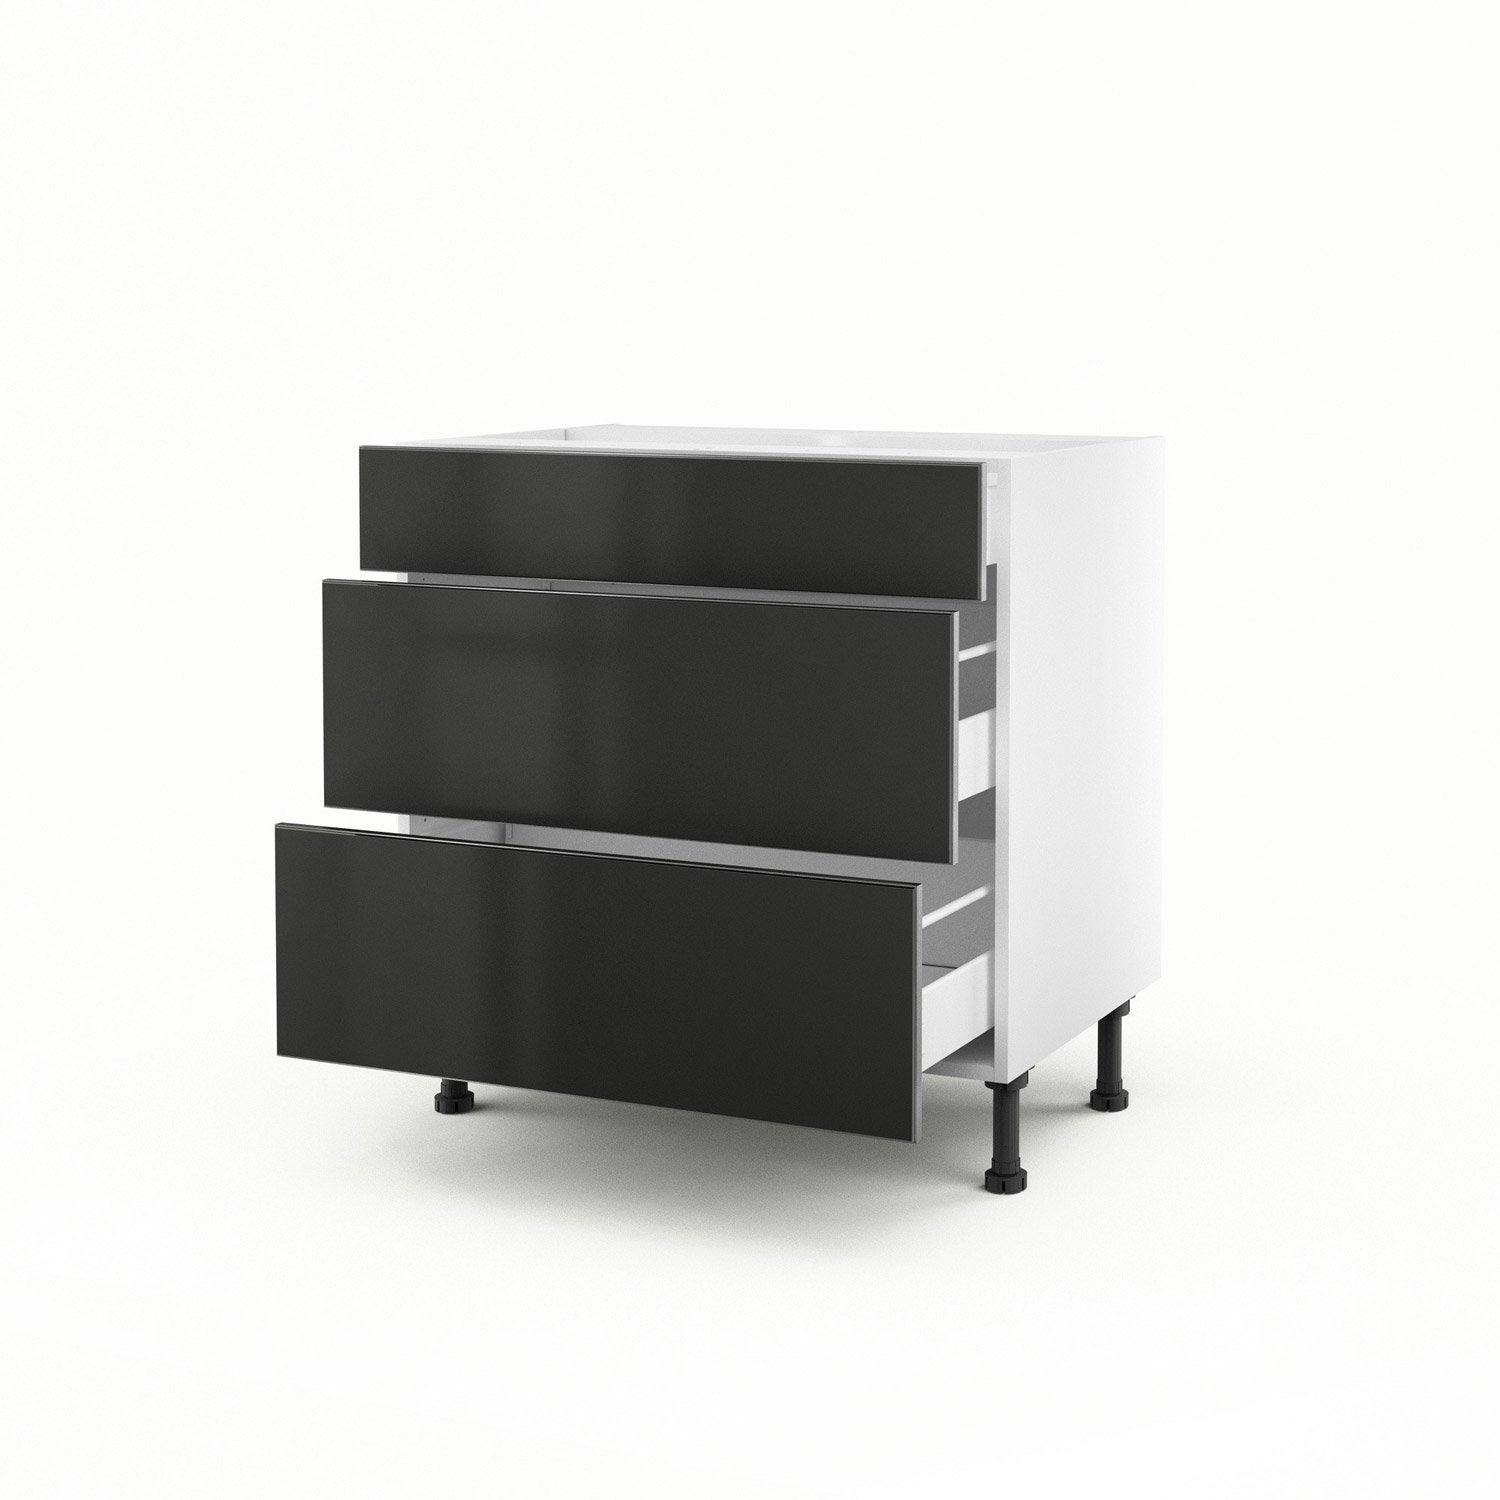 meuble de cuisine bas gris 3 tiroirs frost x x cm leroy merlin. Black Bedroom Furniture Sets. Home Design Ideas